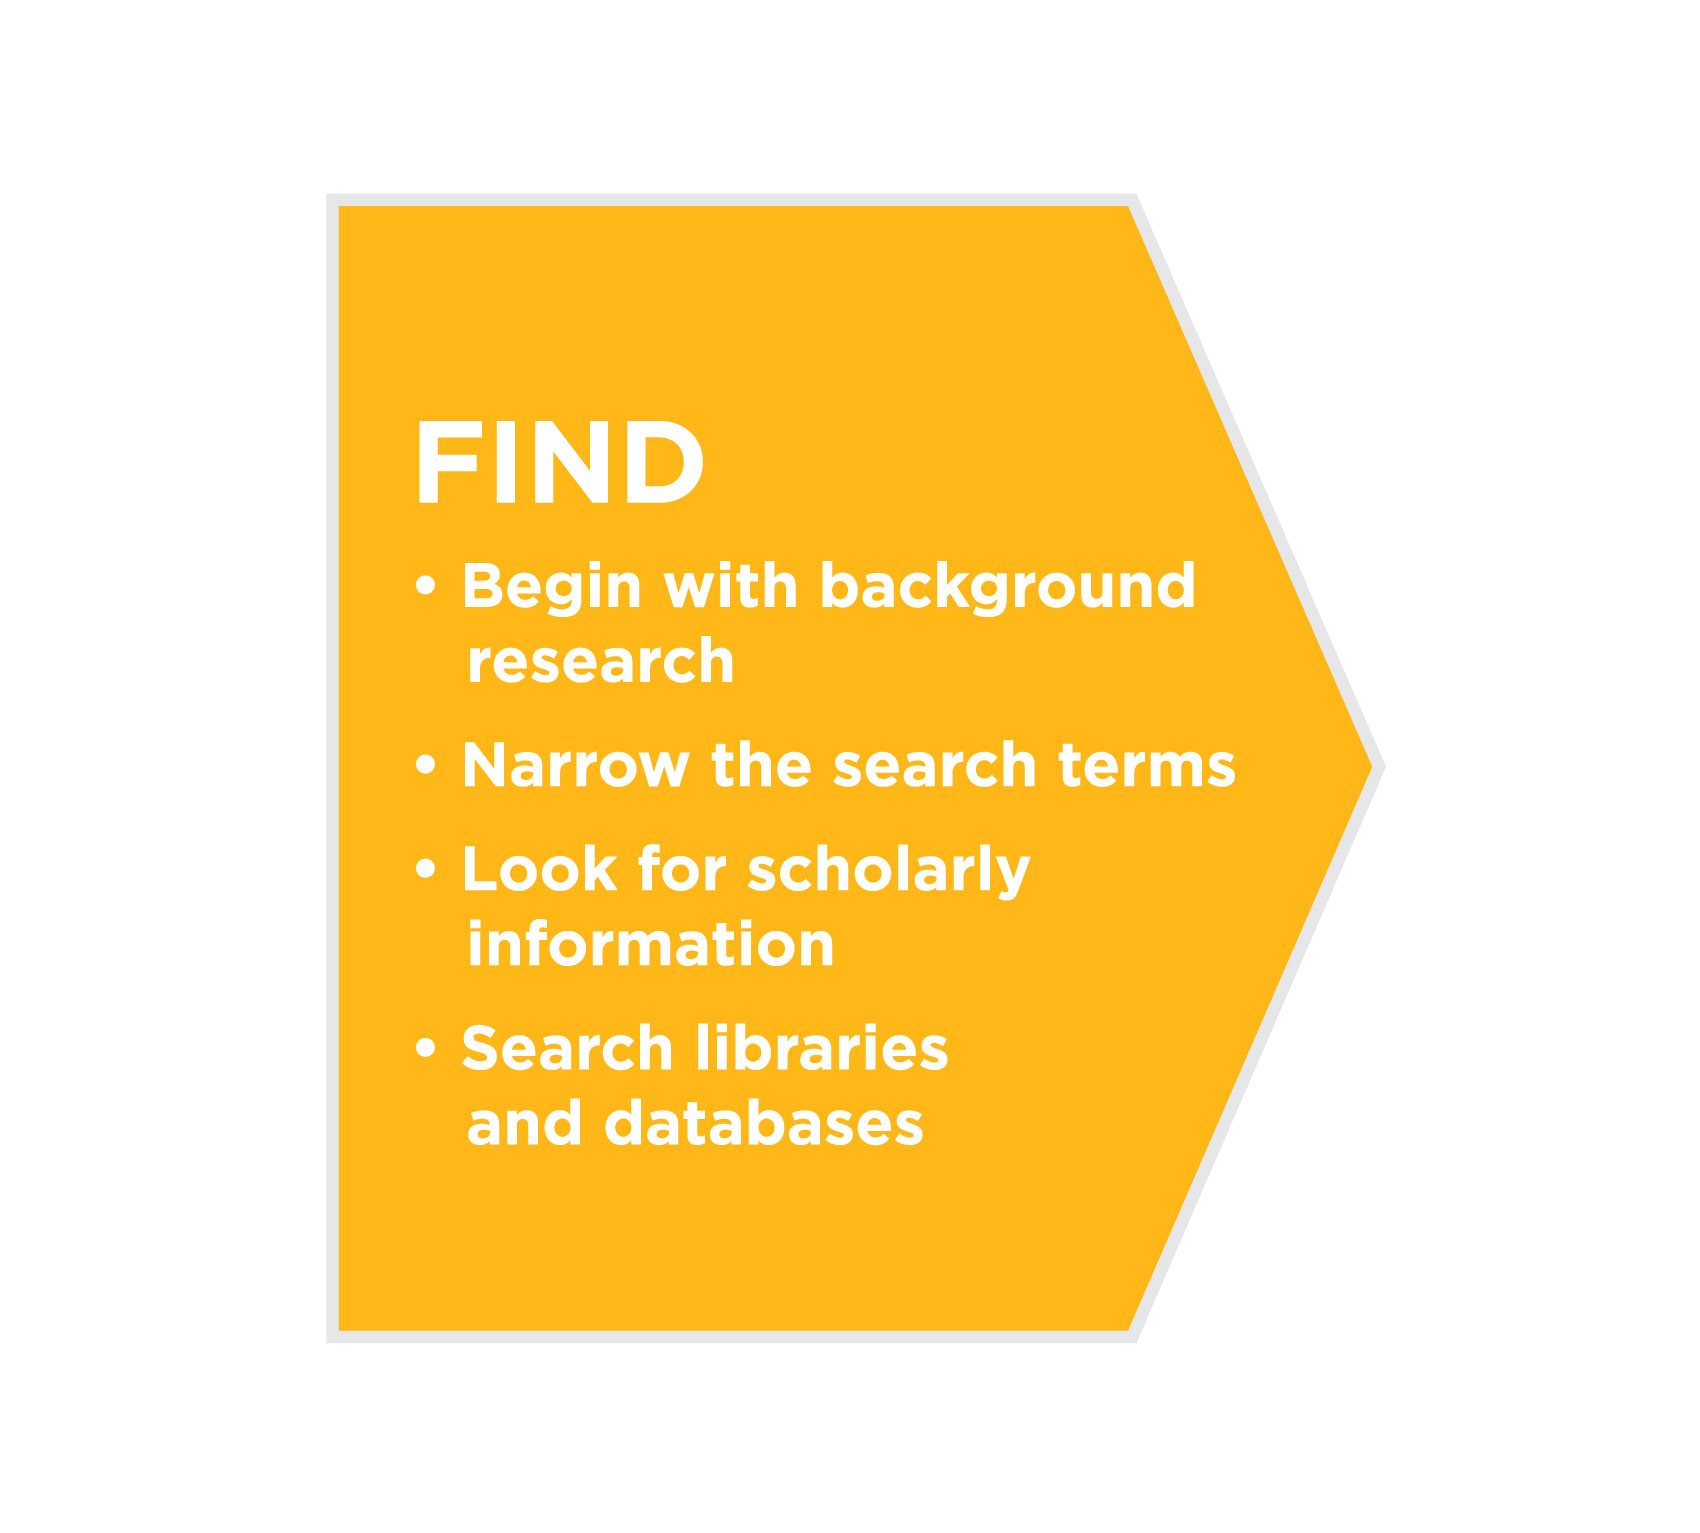 Tips for finding sources: begin with background research, narrow the search terms, look for scholarly information, search libraries and databases.